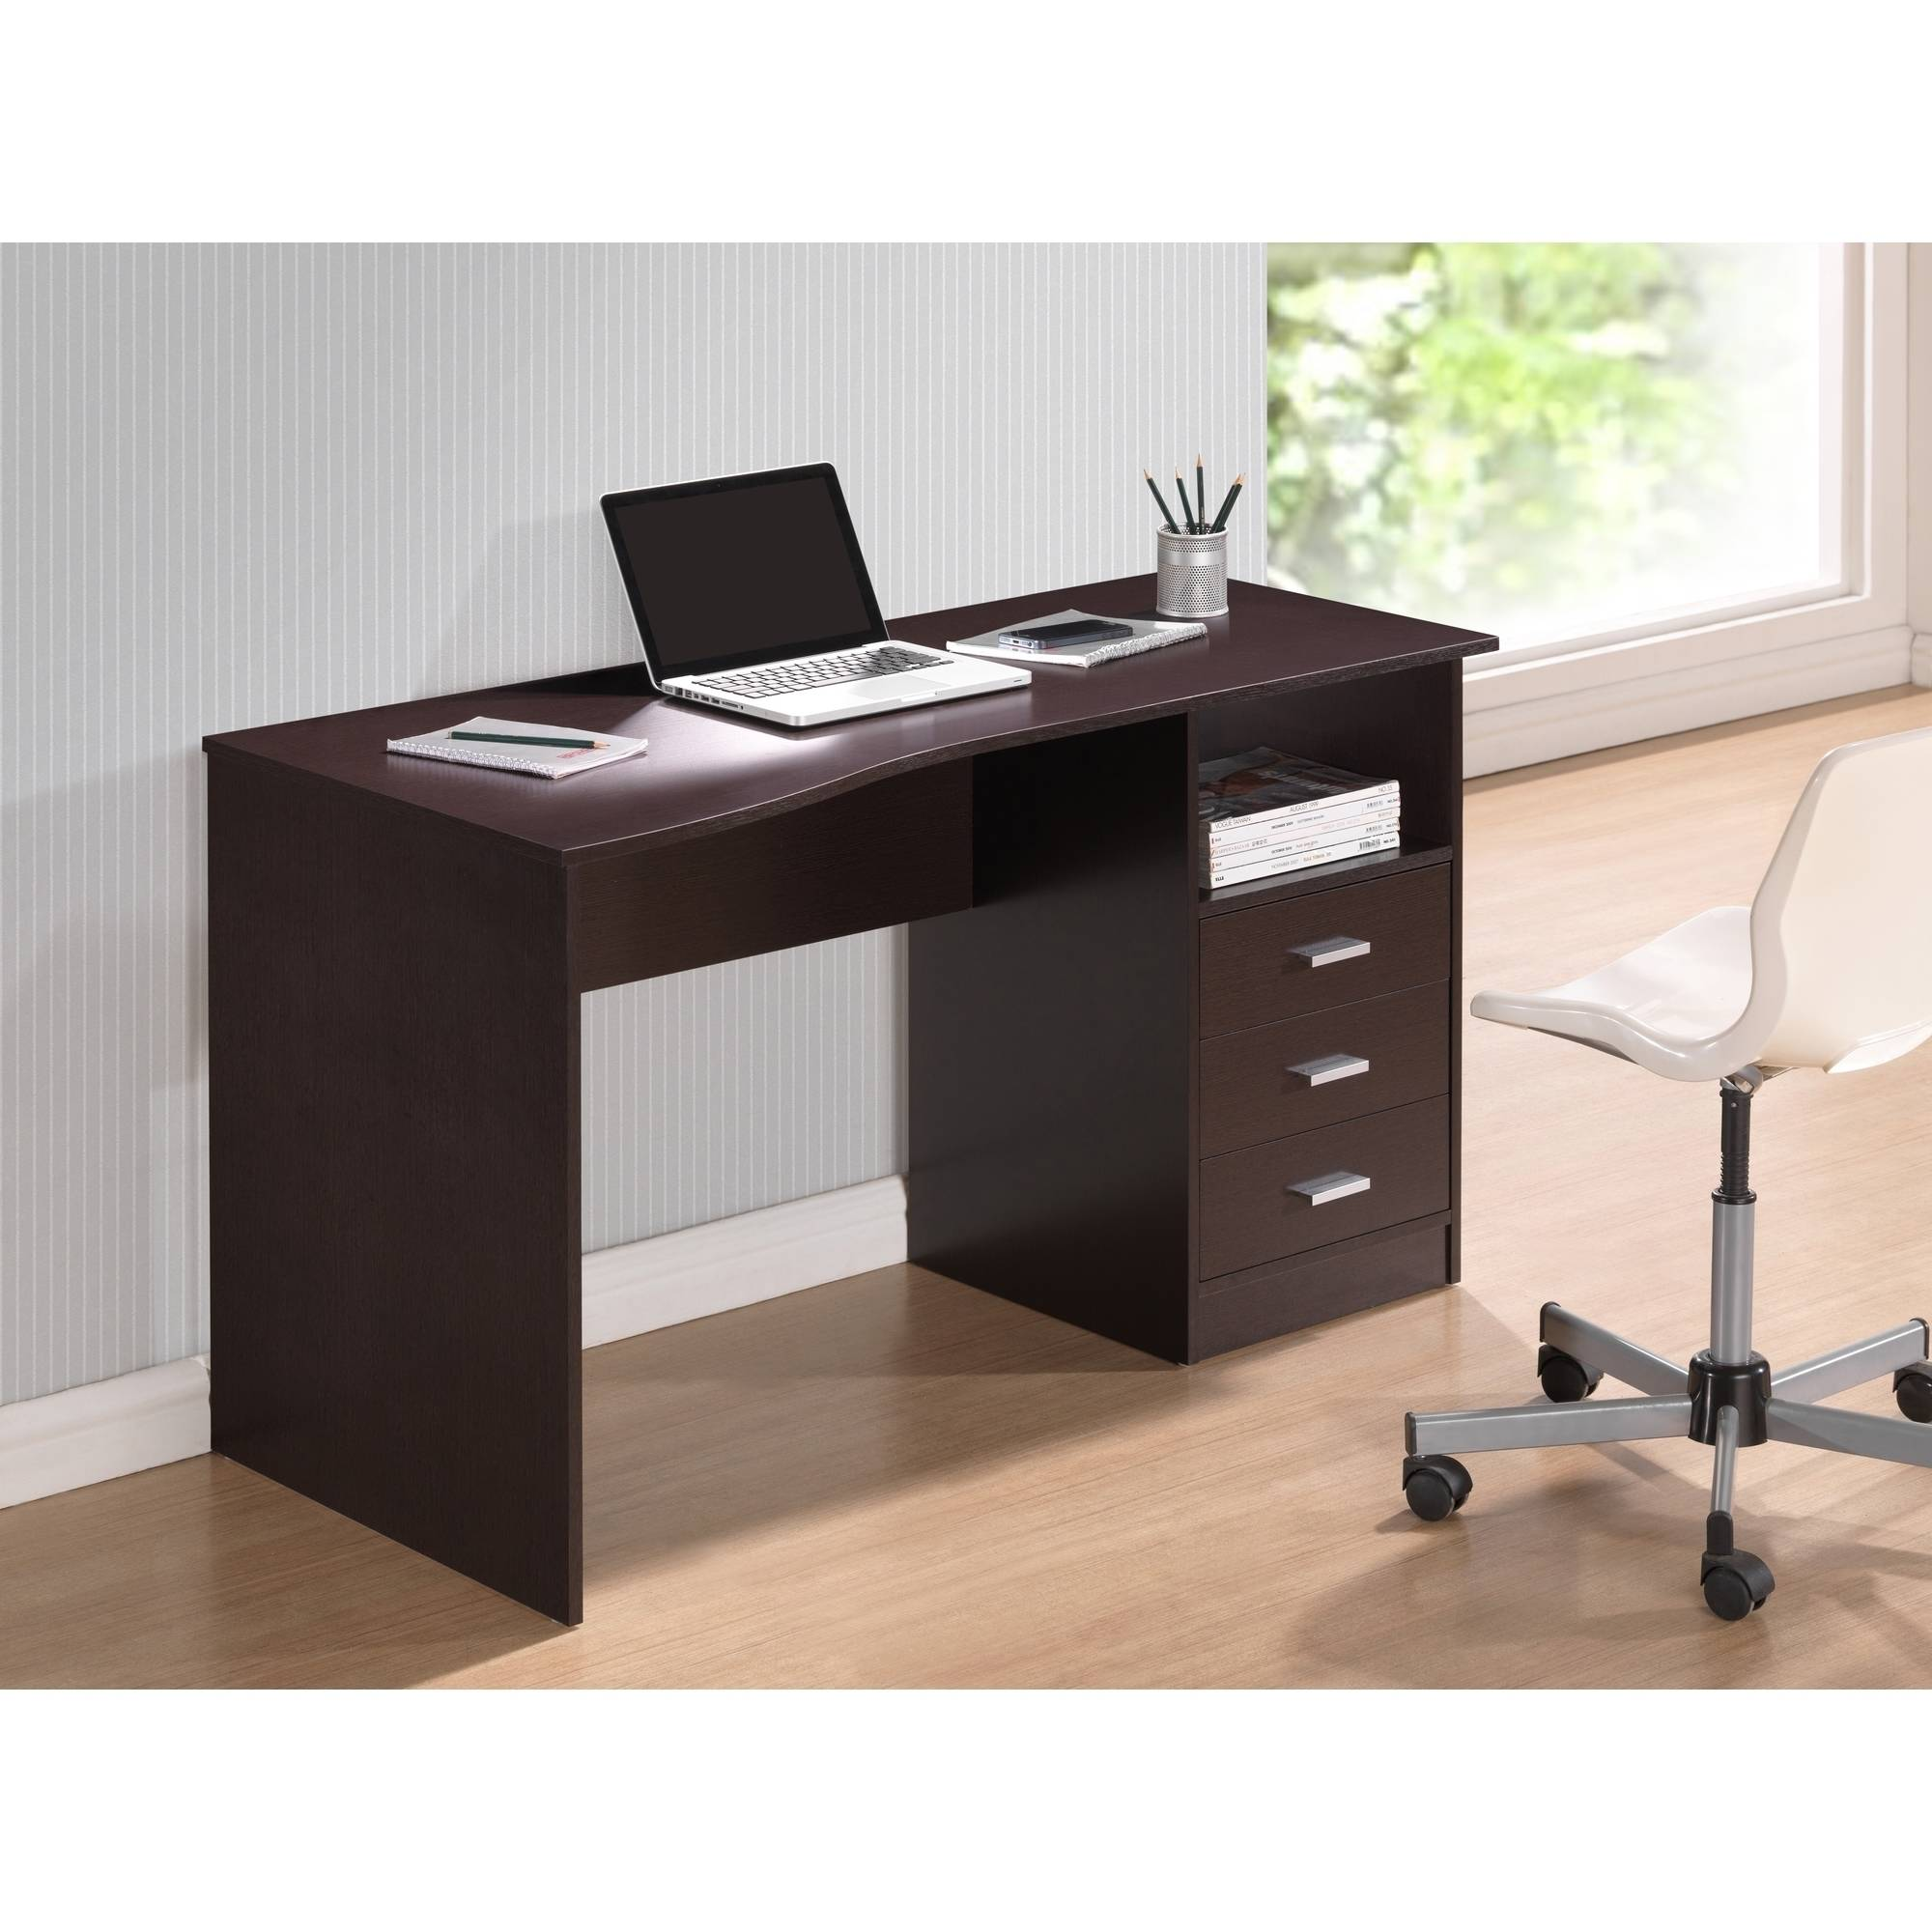 workstation desk by glass mobili website bjs furniture complete office techni outstanding home rta cabinet tempered computer l an retractable have rug shaped